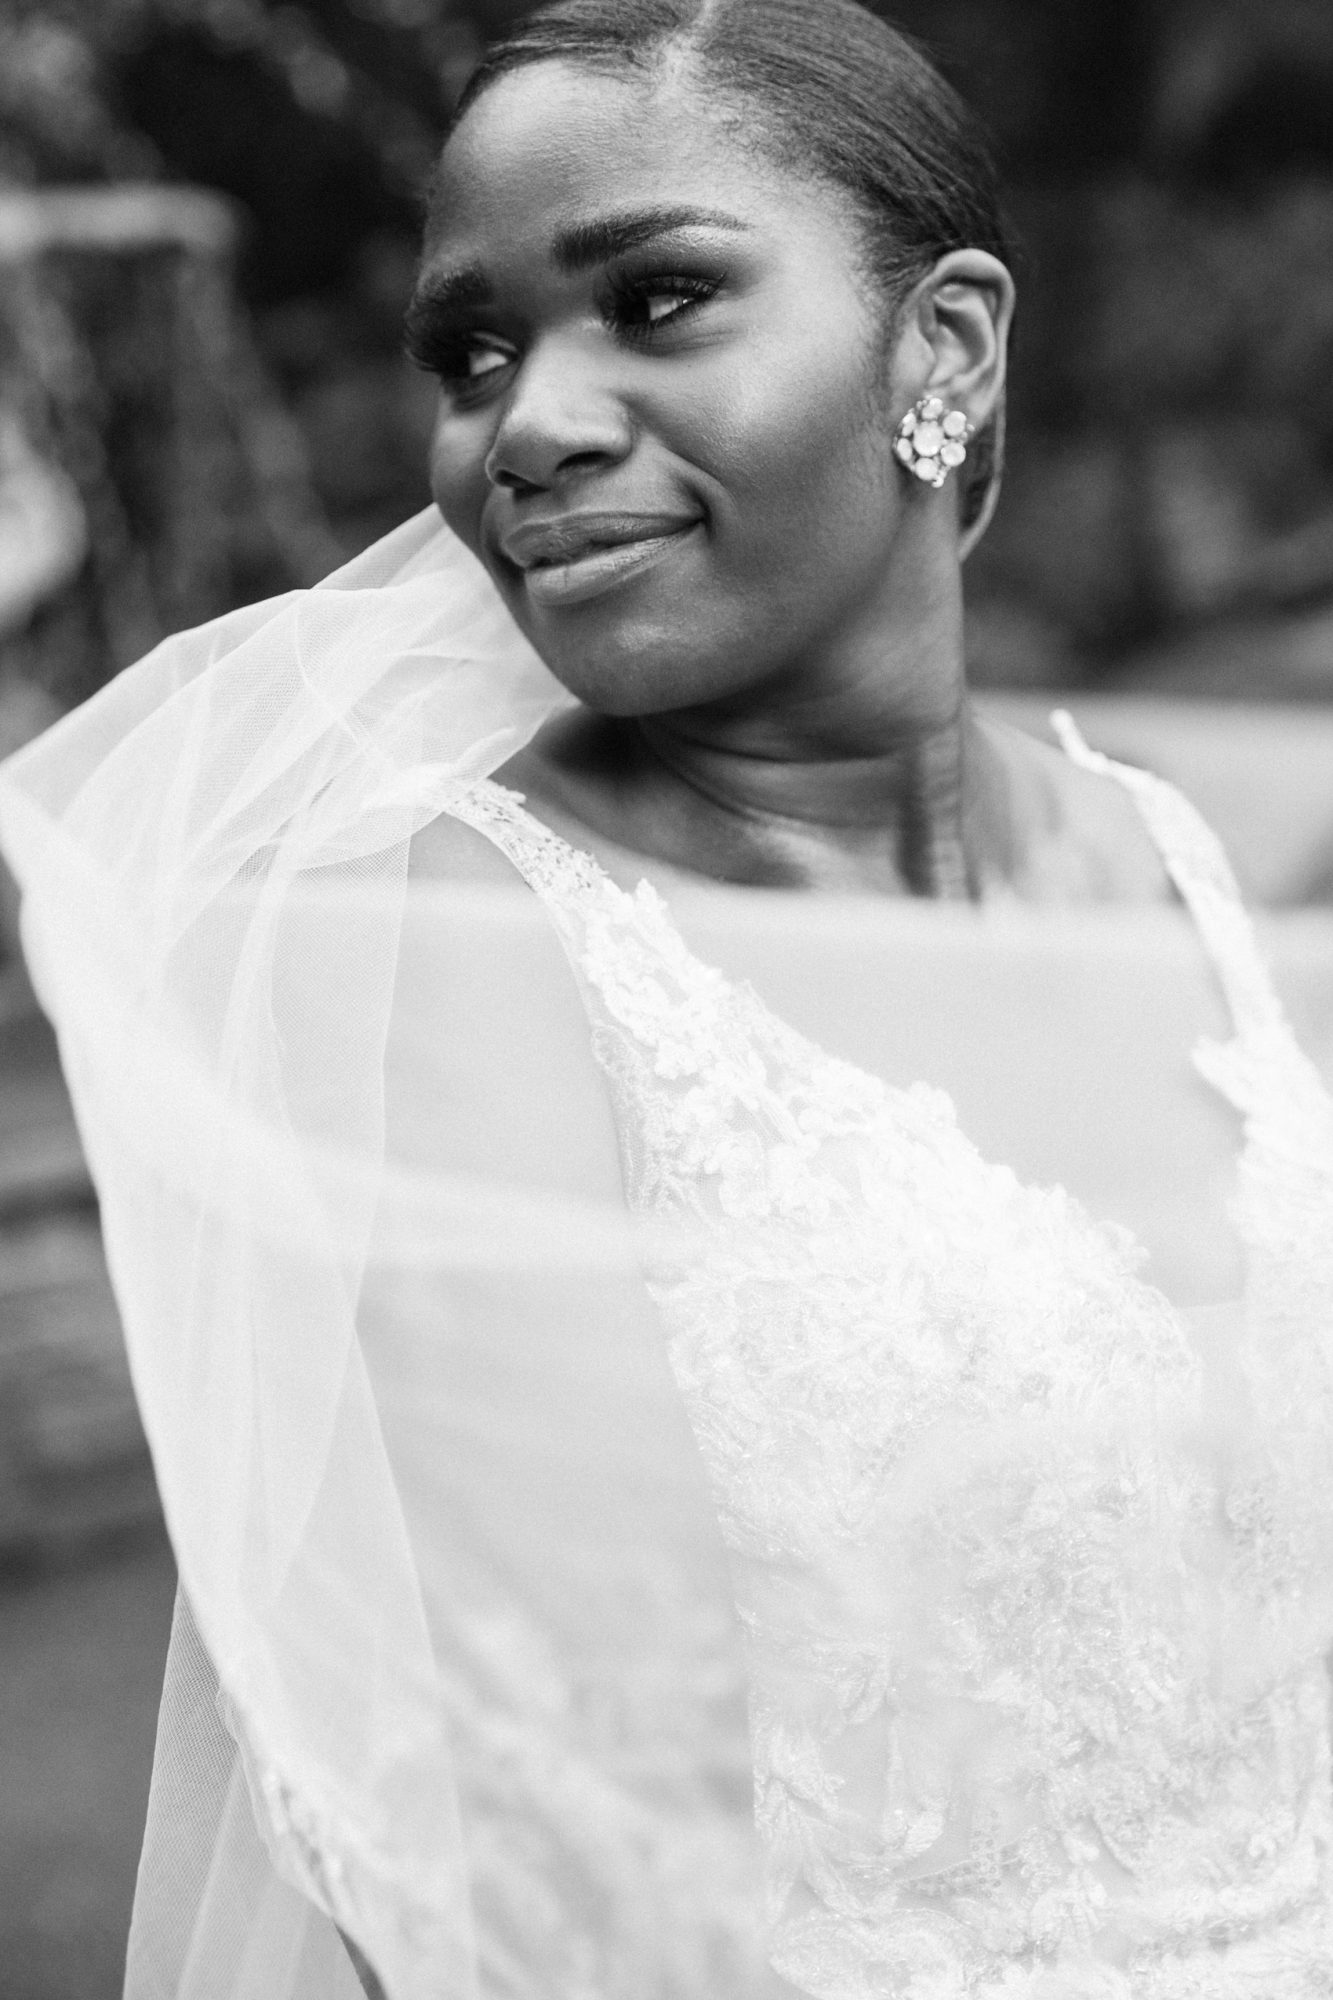 black and white close-up of bride